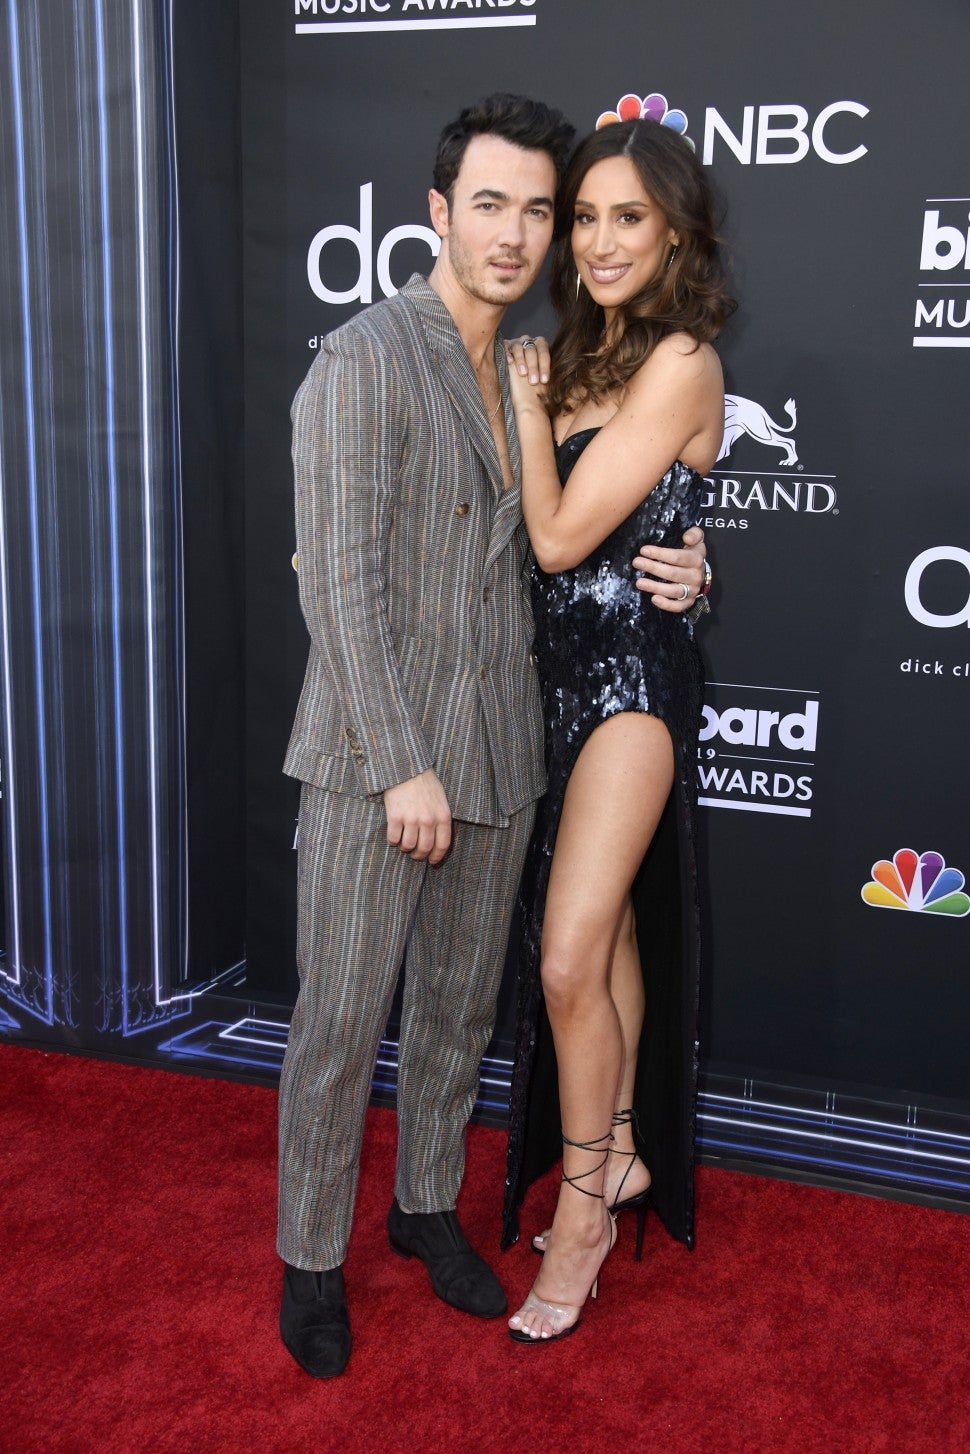 kevin jonas danielle jonas 2019 billboard music awards